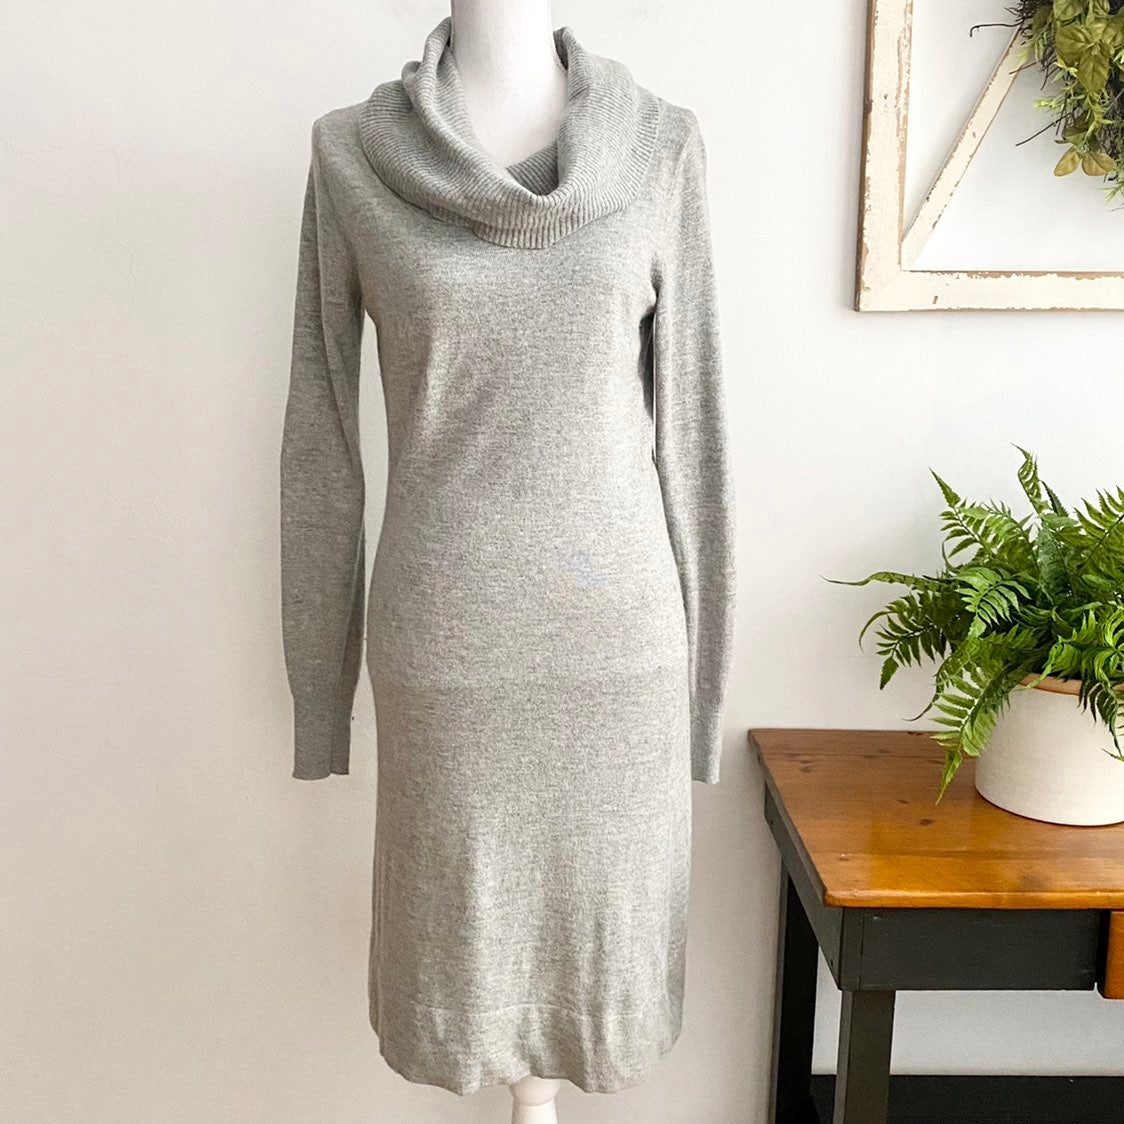 Lady Hathaway Gray Cowl Neck Sweater Dre